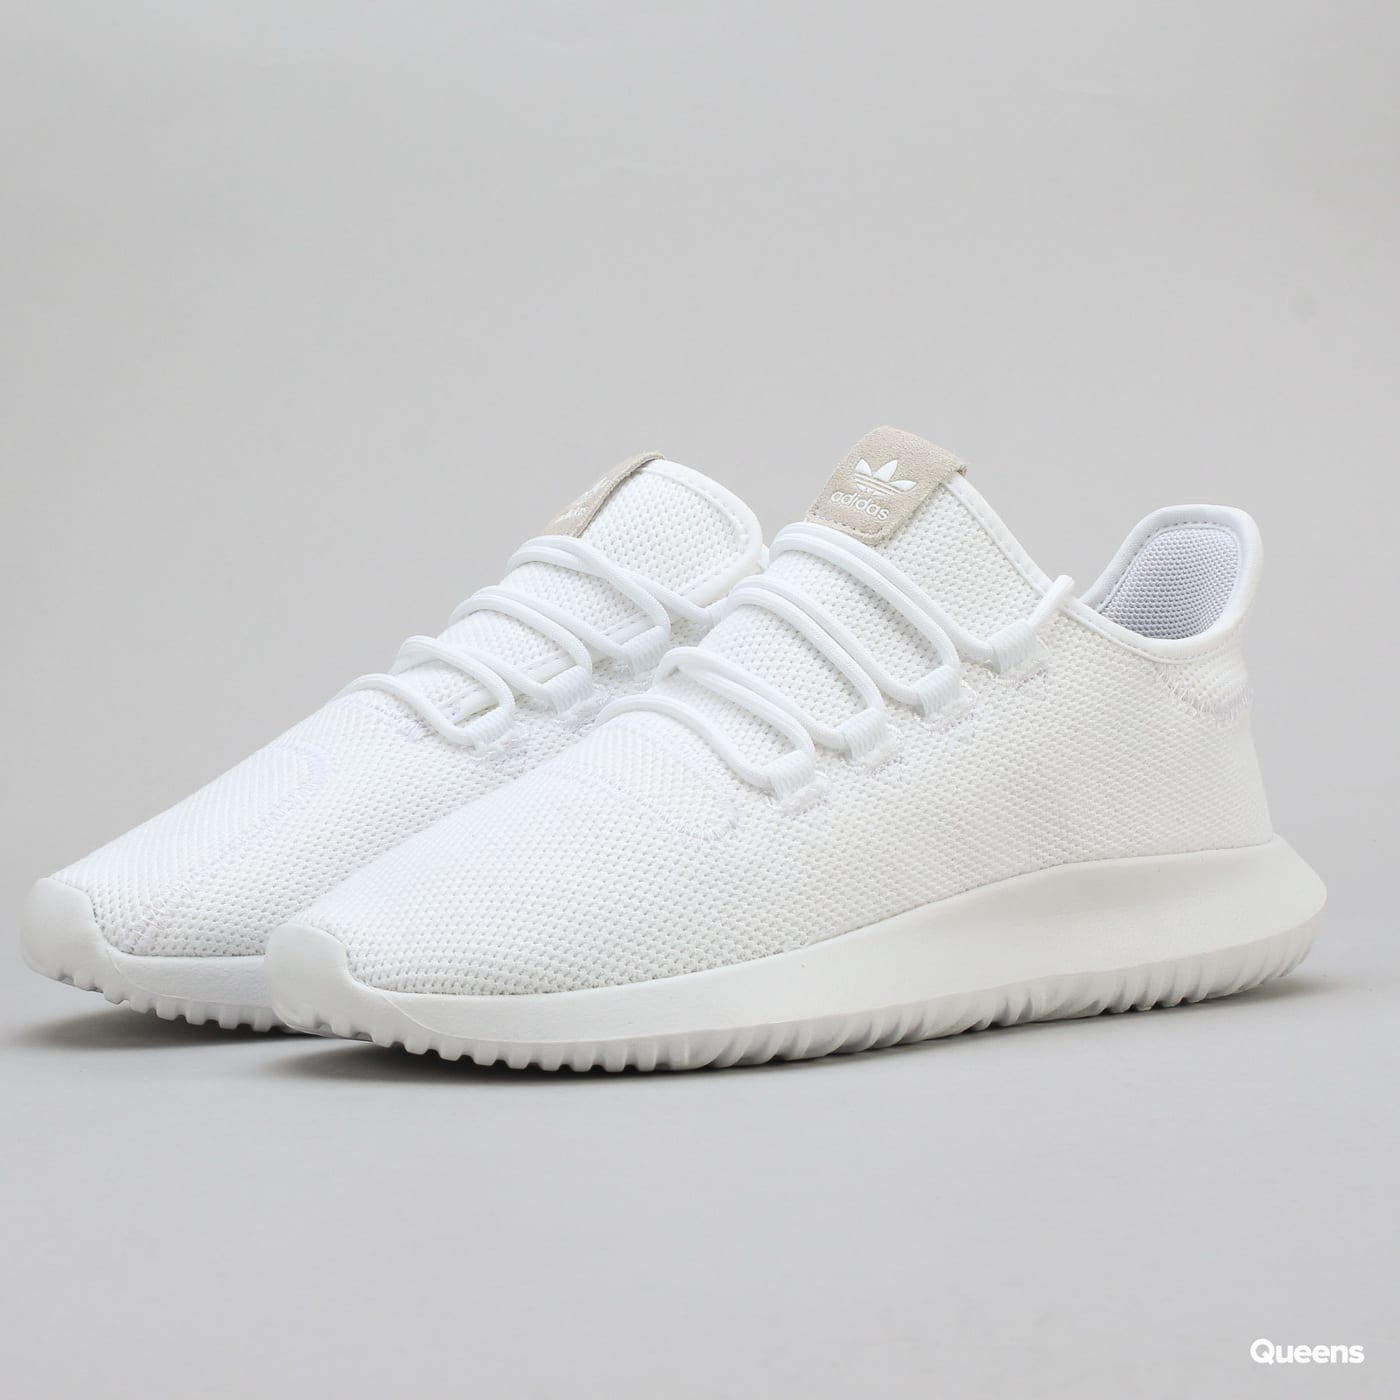 dfdfdd79f Boty adidas Originals Tubular Shadow (CG4563) – Queens 💚